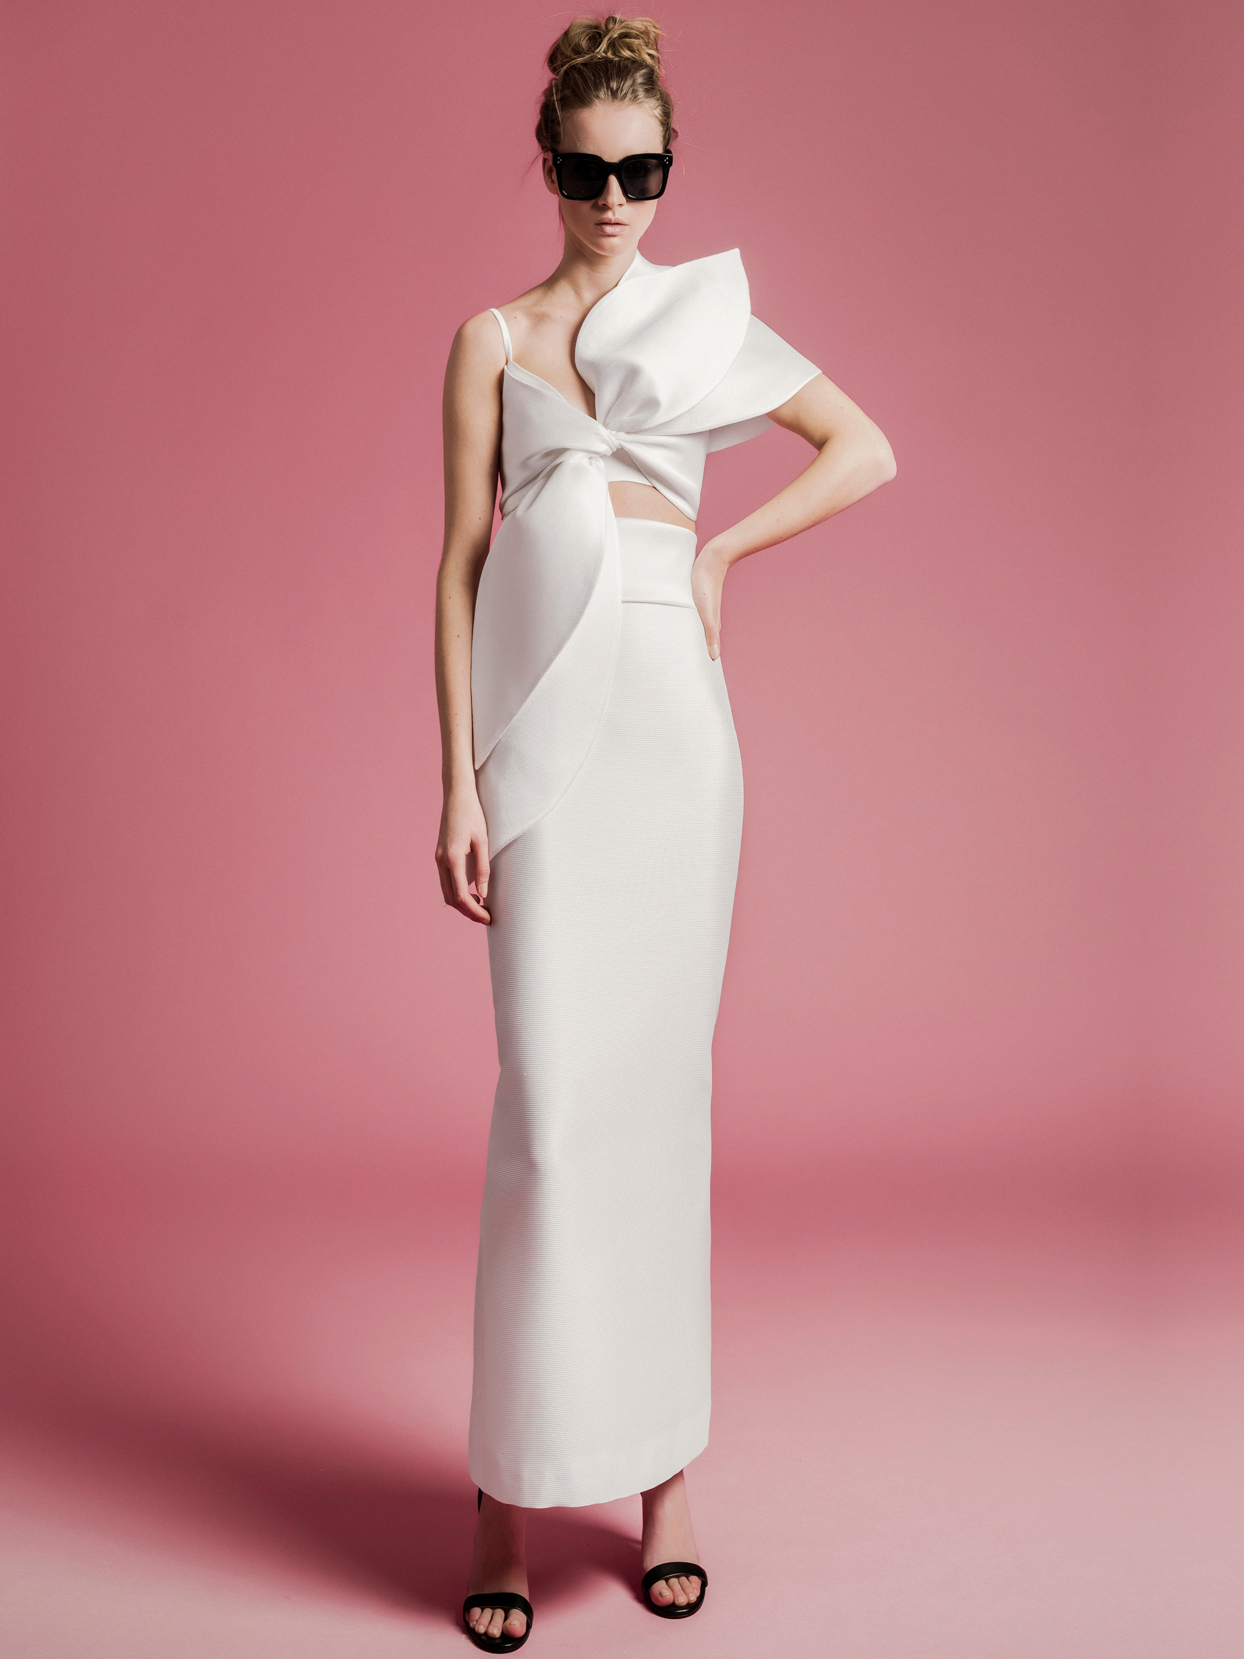 Sophie Et Voilà bow top fitted skirt wedding dress spring 2021